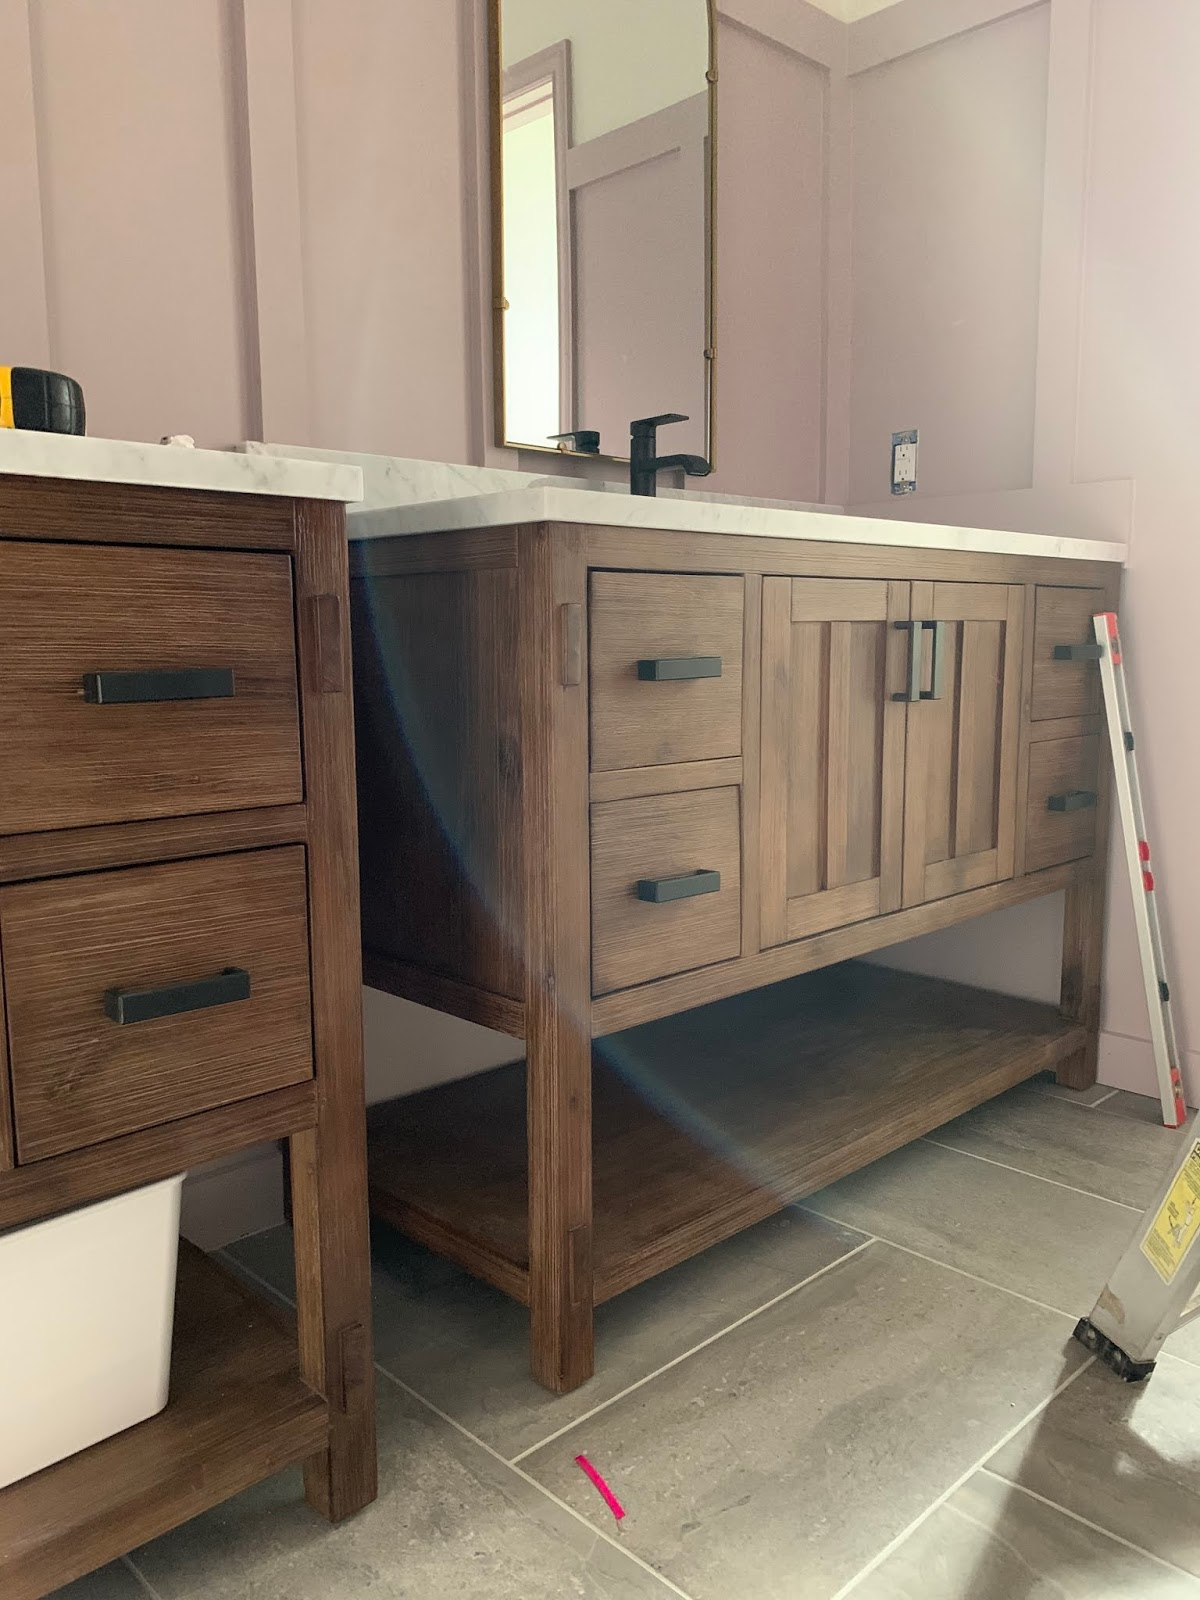 Morris Vanity | Primp and Pamper Bathroom Makeover sponsored by Signature Hardware and Build.com | House Homemade